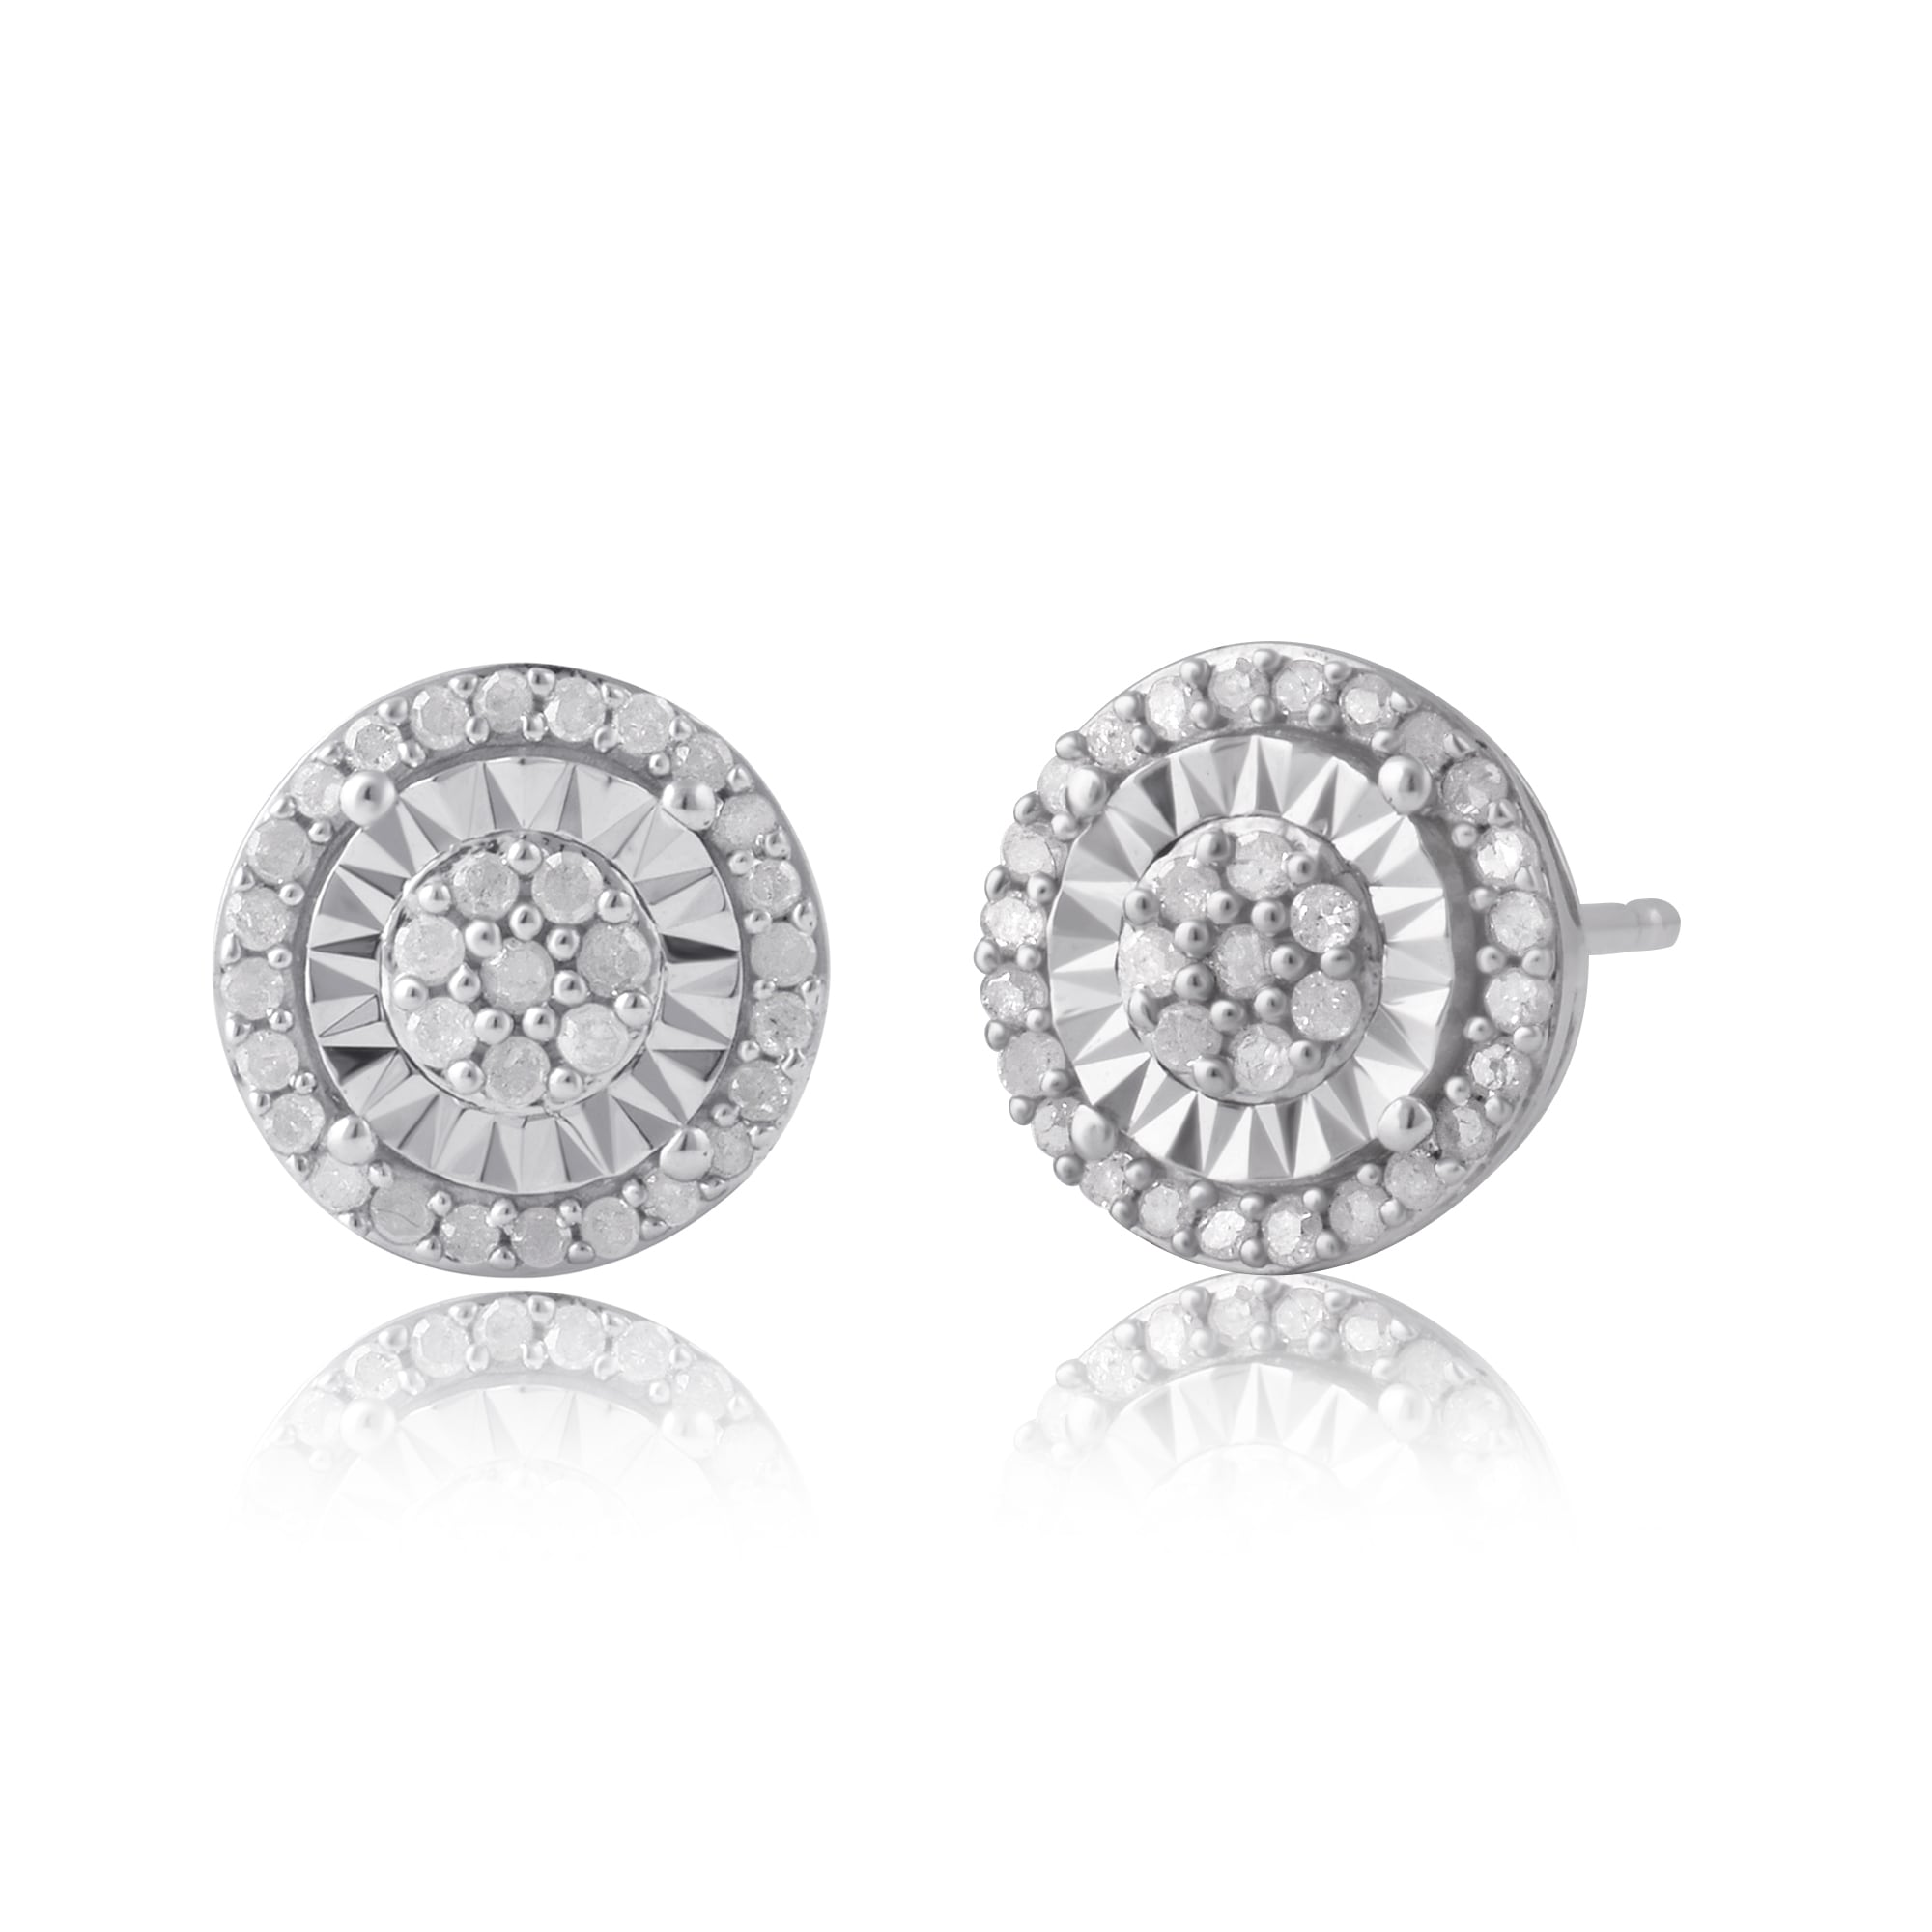 jewelry m product nikki diamond stud baguette test earrings